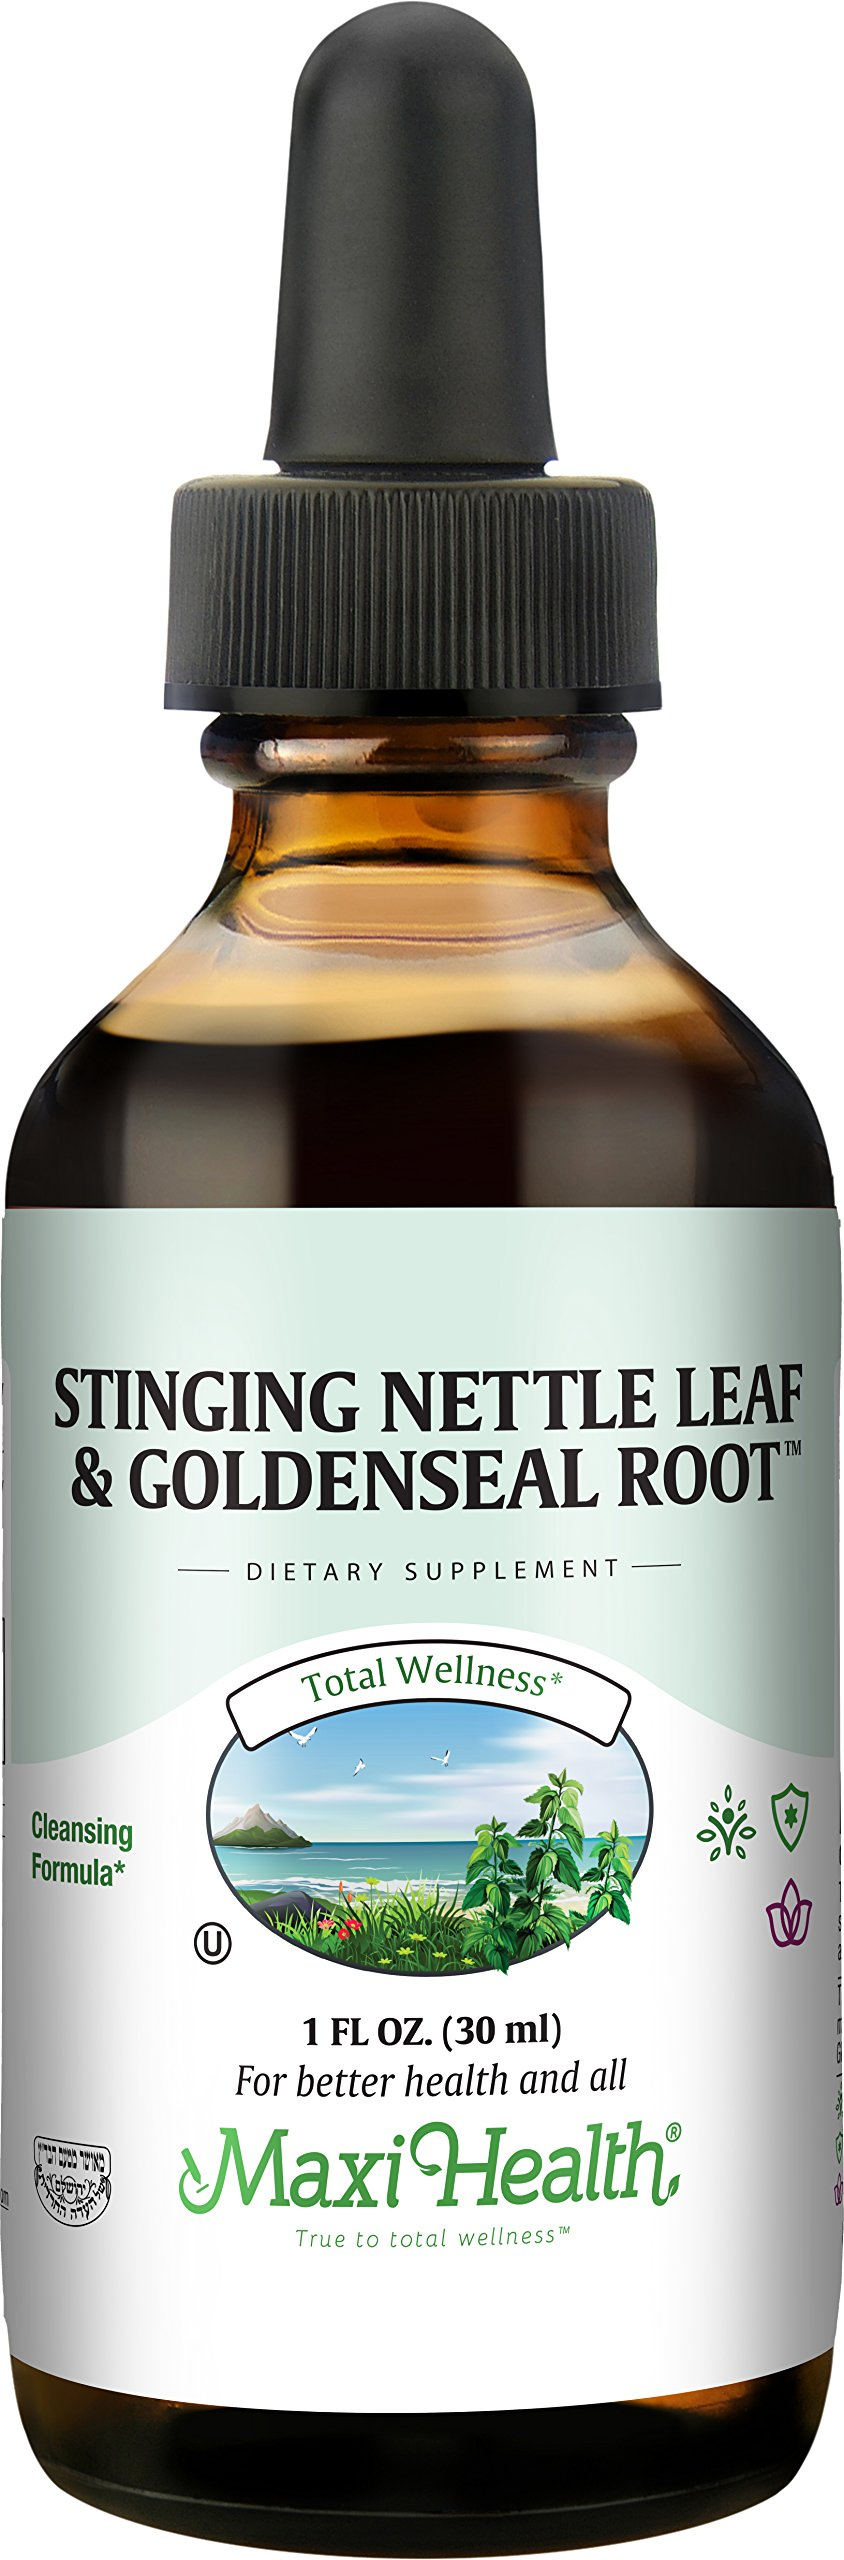 Maxi Health Stinging Nettle Leaf Extract - with Goldenseal Root - 1 Fluid Ounce Bottle - Kosher